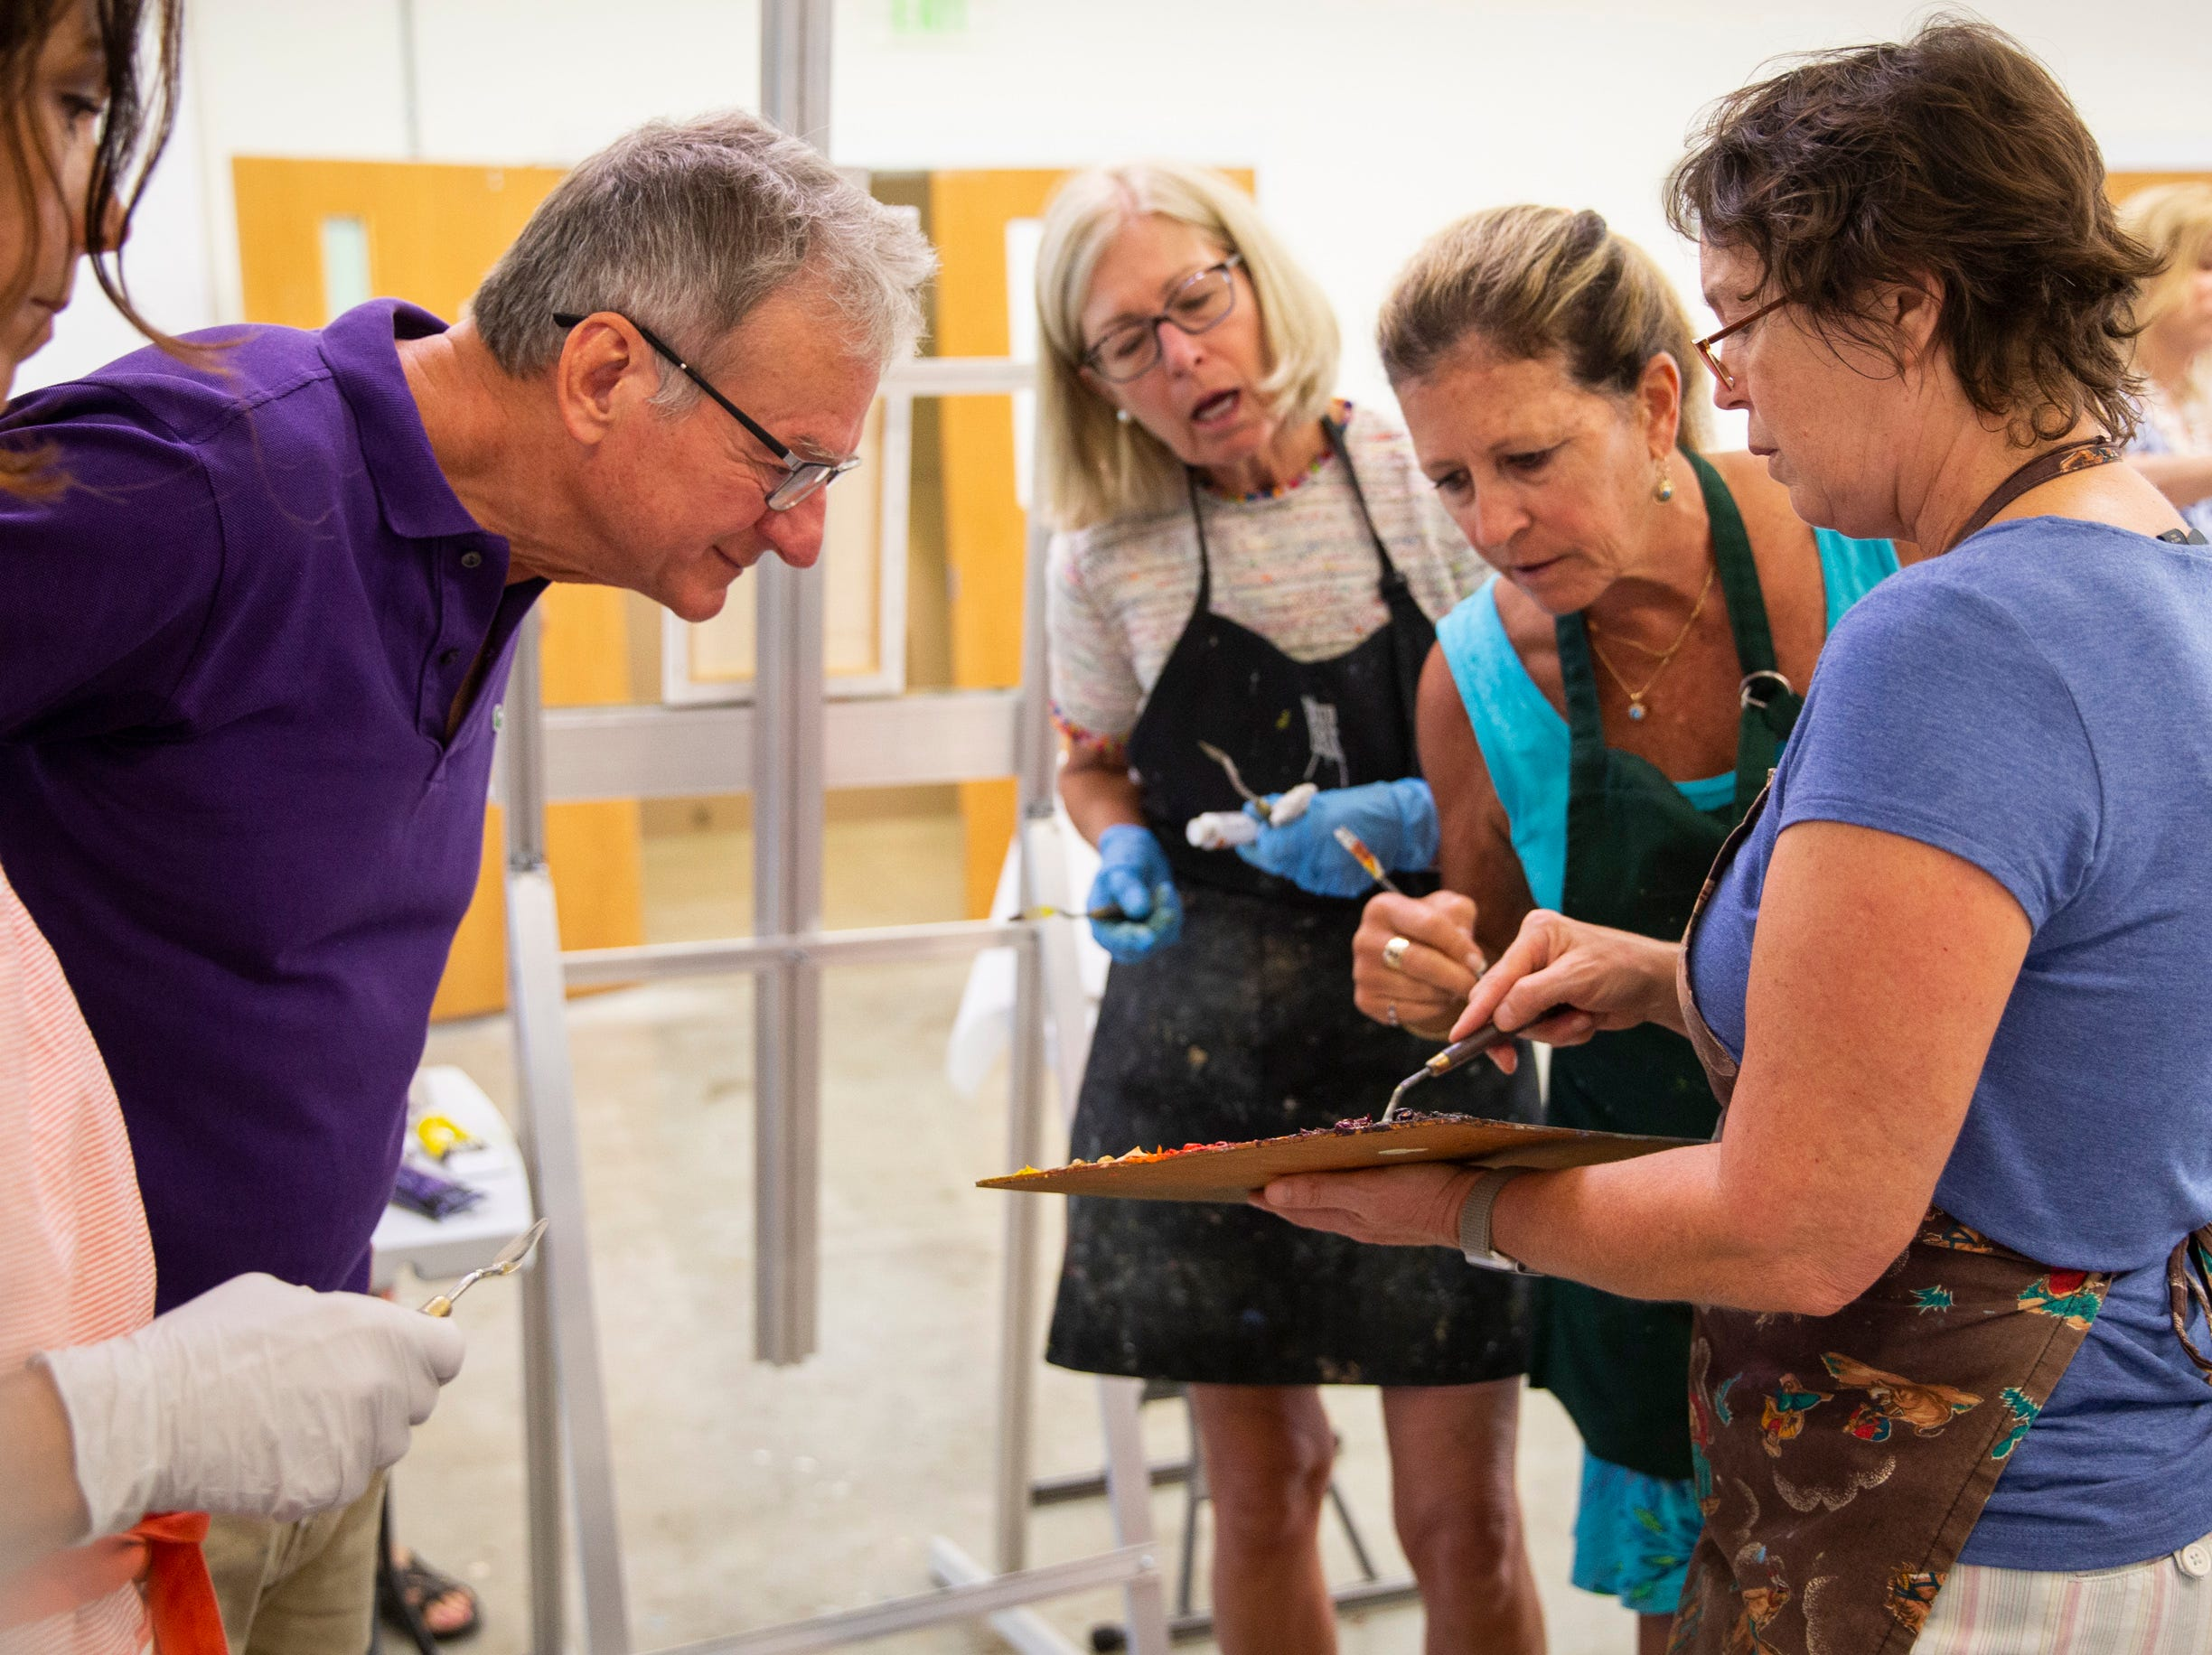 From left to right, Leonza Machielse, David Neden, Ann Fitzgerald, and Maryellen Shea watch as instructor Angela Anderson, right, shows them how to mix the correct colors for their painting during a palette knife painting class at the Naples Art Association in Naples on Wednesday, March 27, 2019.